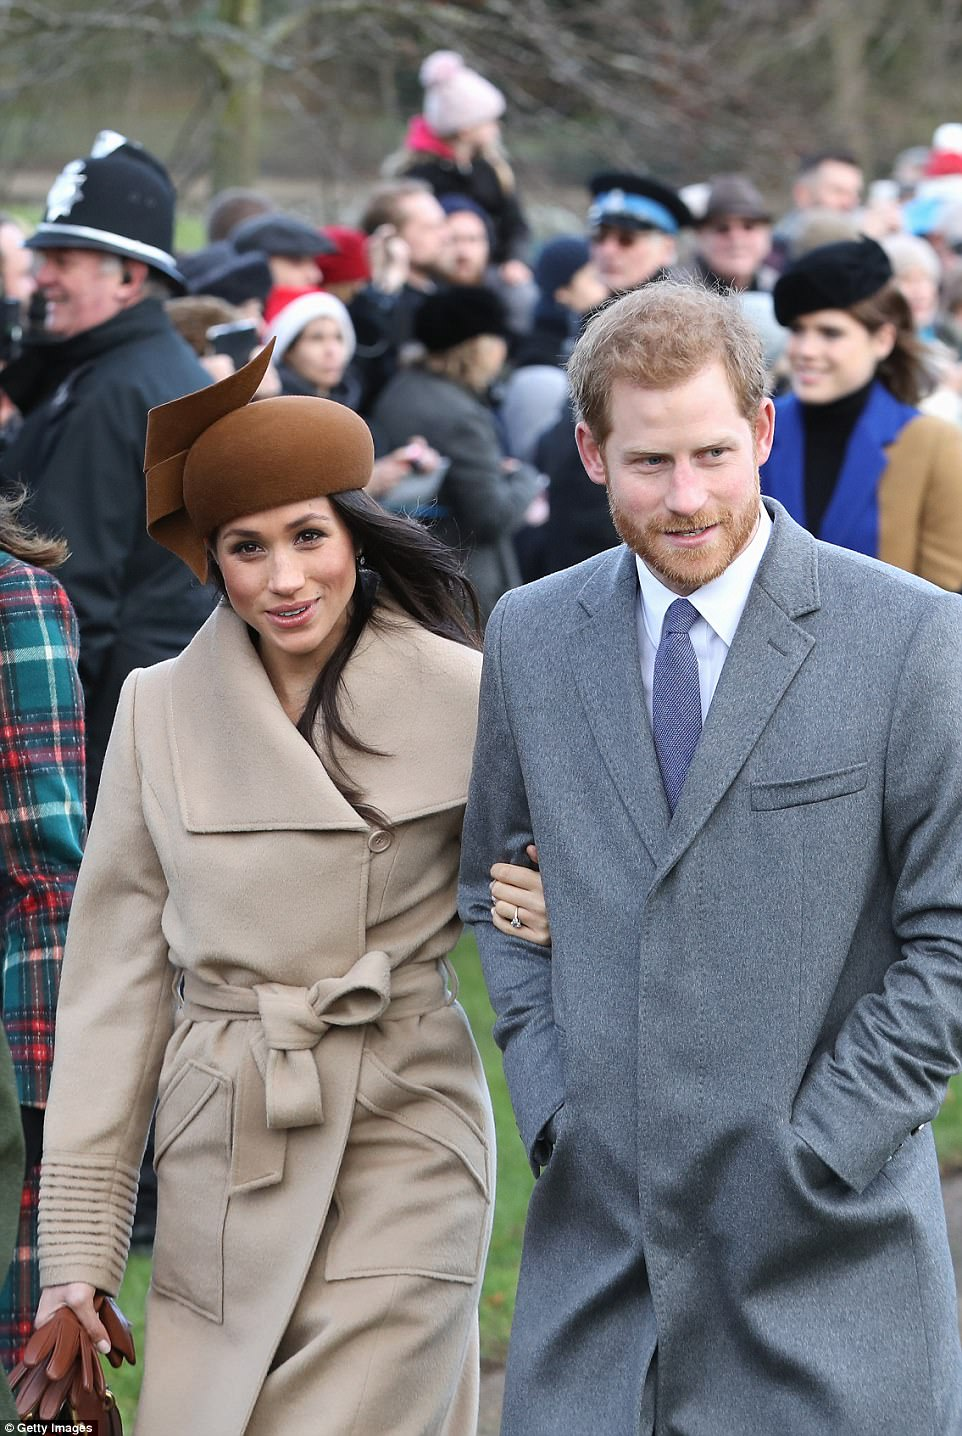 Meghan seemed at ease as she smiled and chatted with Prince Harry while clutching a pair of brown leather gloves in her spare hand